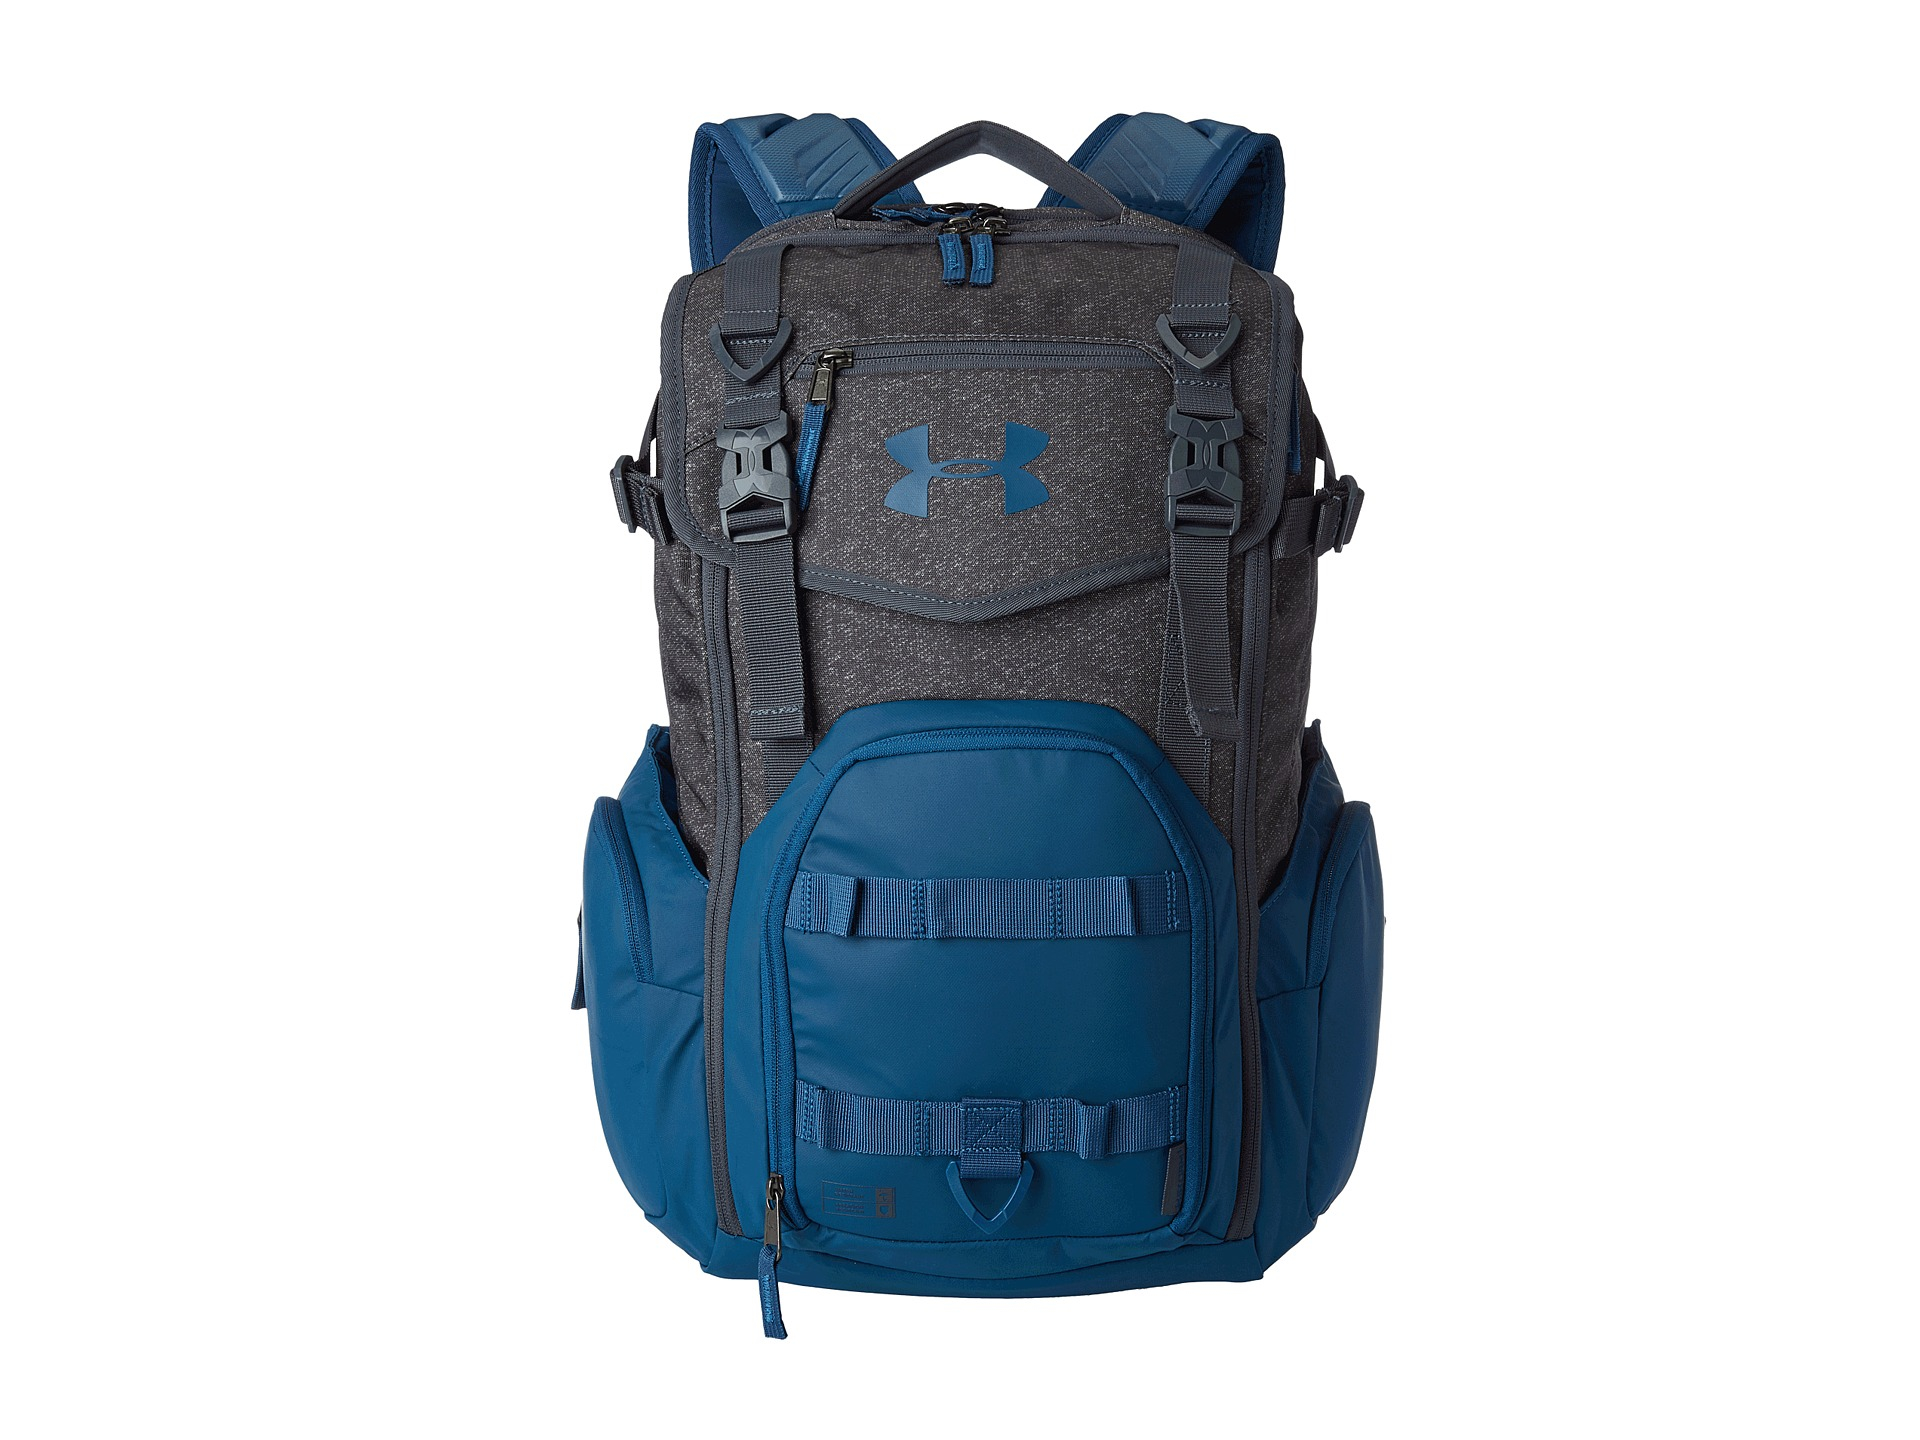 49c65f4c01 Lyst - Under Armour Ua Coalition Backpack in Blue for Men